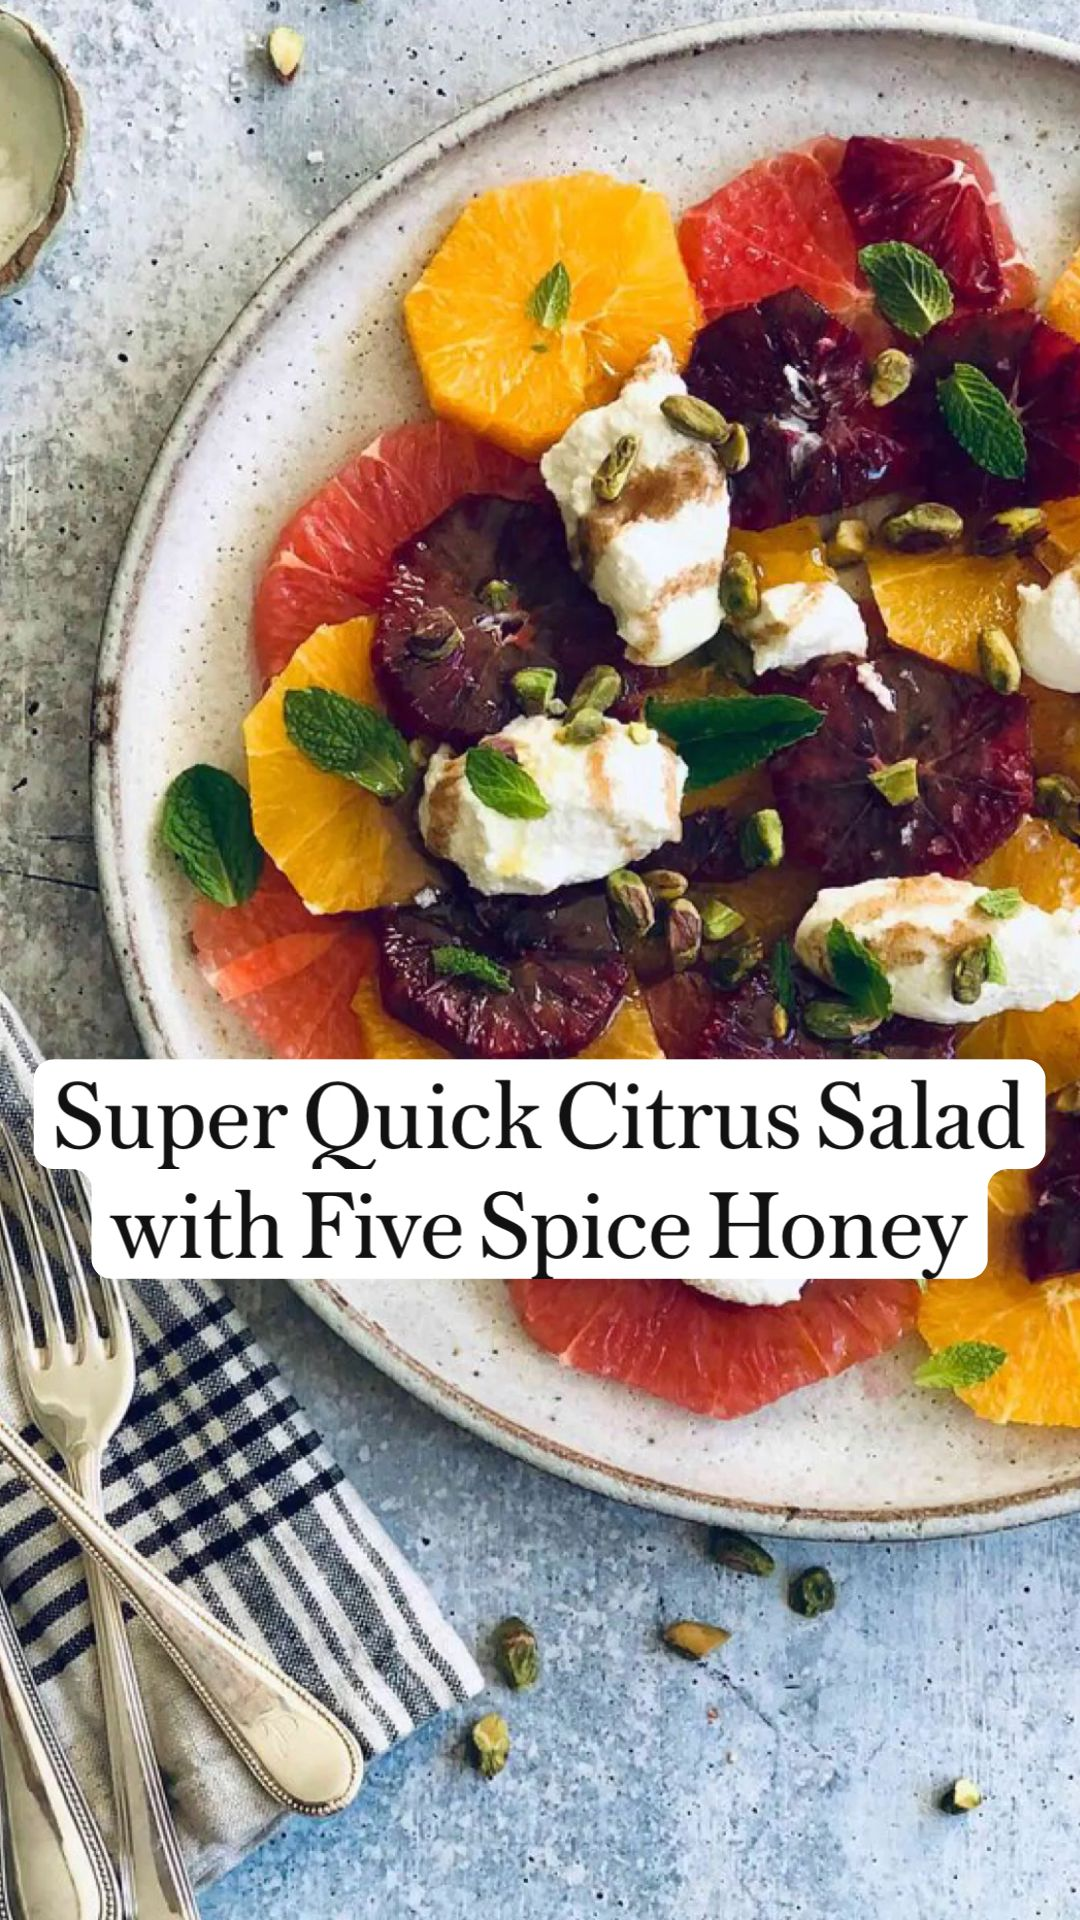 Peter Som's Citrus Salad with Five Spice Honey